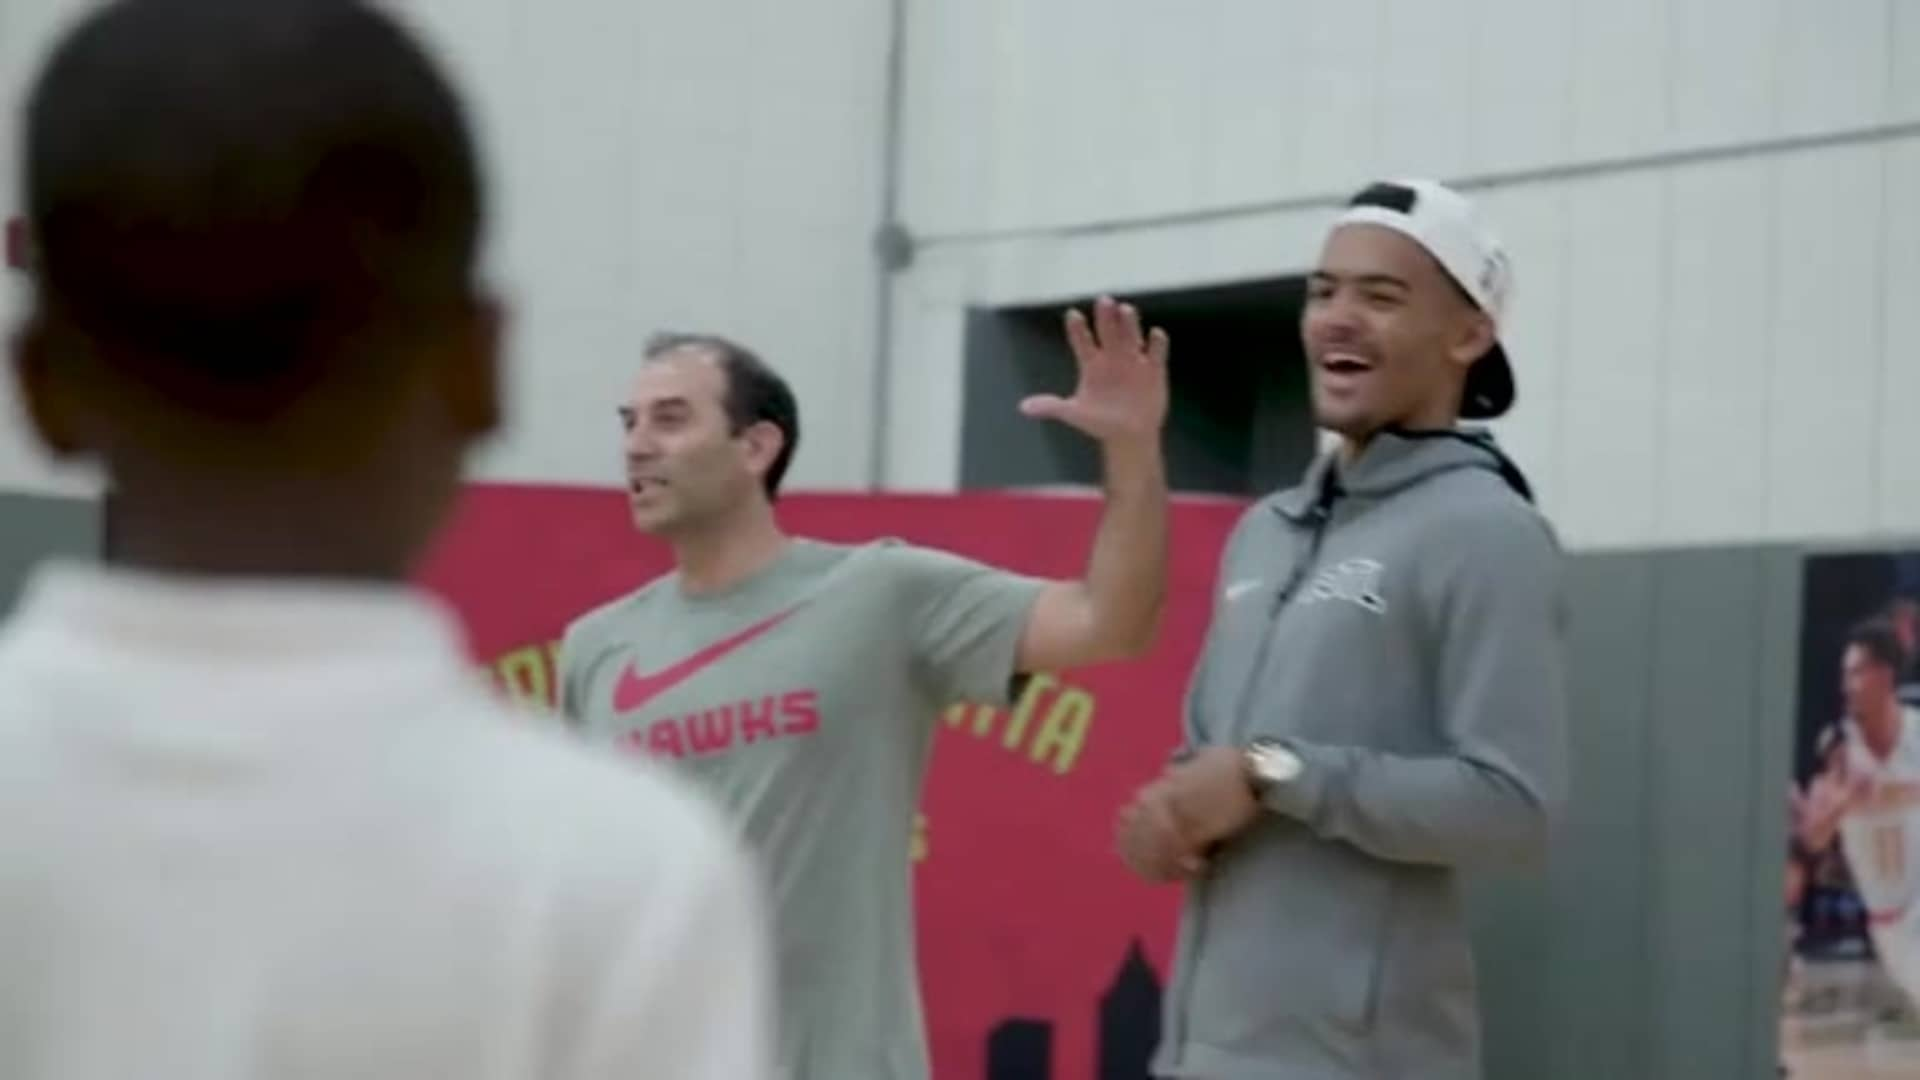 Trae Young, Georgia Power Combine To Teach Kids About Energy Efficiency